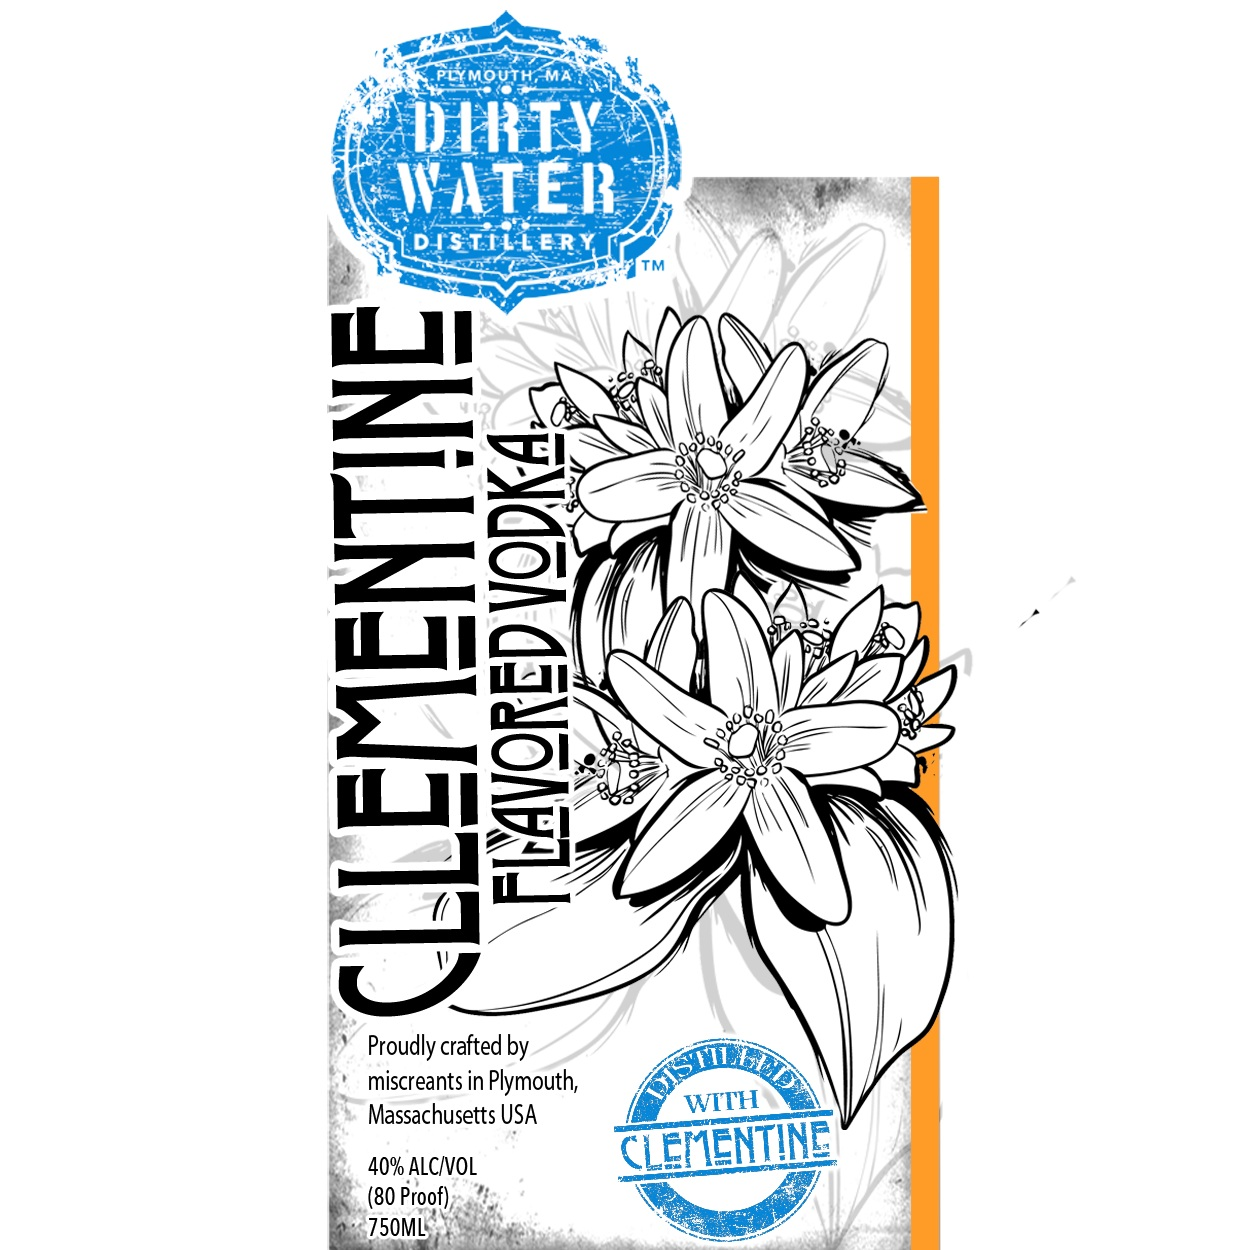 Clementine Vodka  - Clear and Crisp, made with the peels of fresh clementine oranges which are infused then distilled, providing the uniquely clear and refreshing flavor.